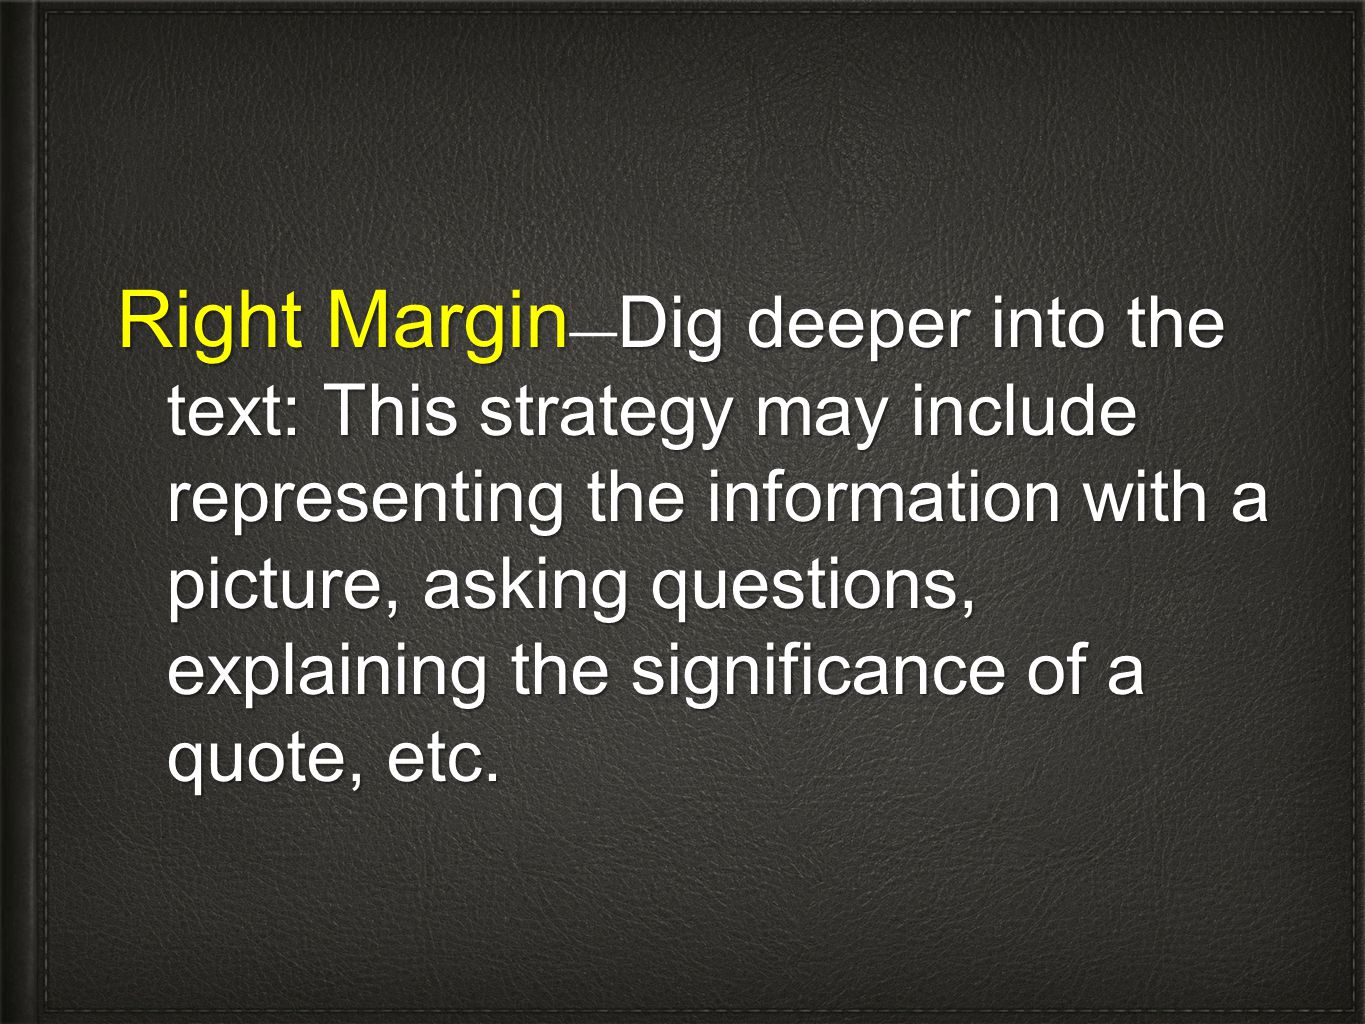 Right Margin Dig deeper into the text: This strategy may include representing the information with a picture, asking questions, explaining the signifi